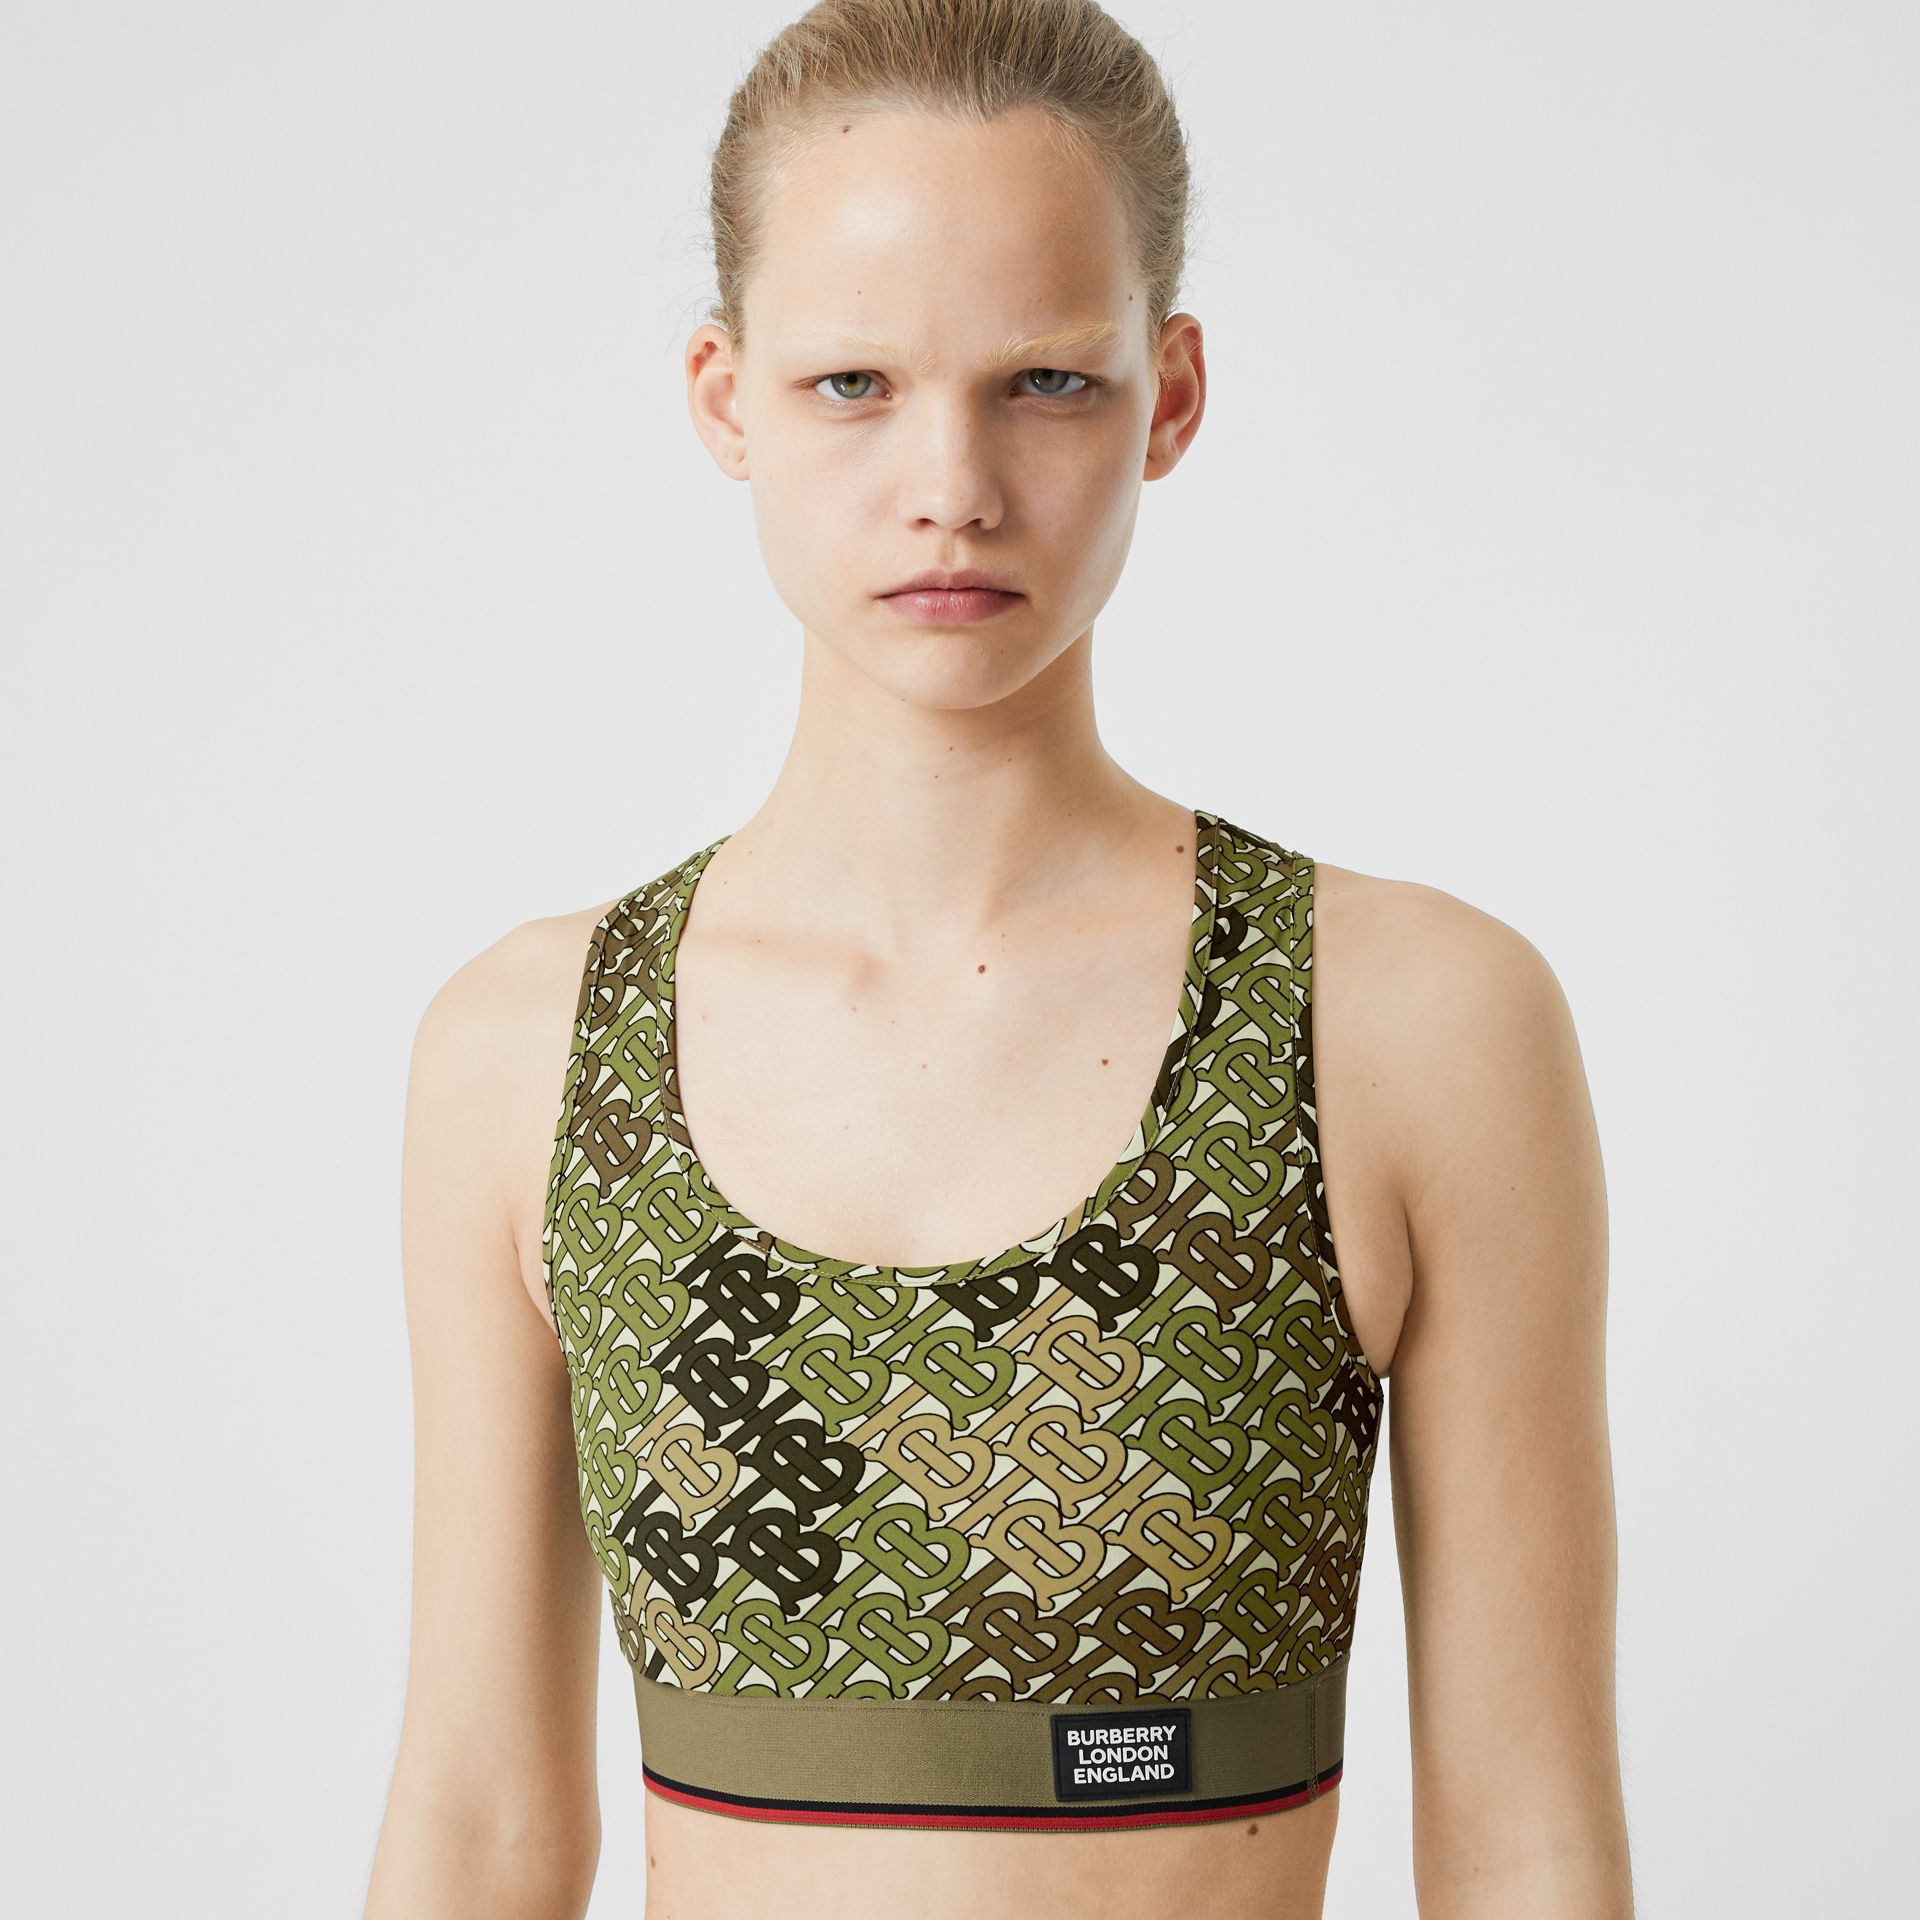 Monogram Print Stretch Jersey Bra Top in Khaki Green - Women | Burberry - gallery image 1